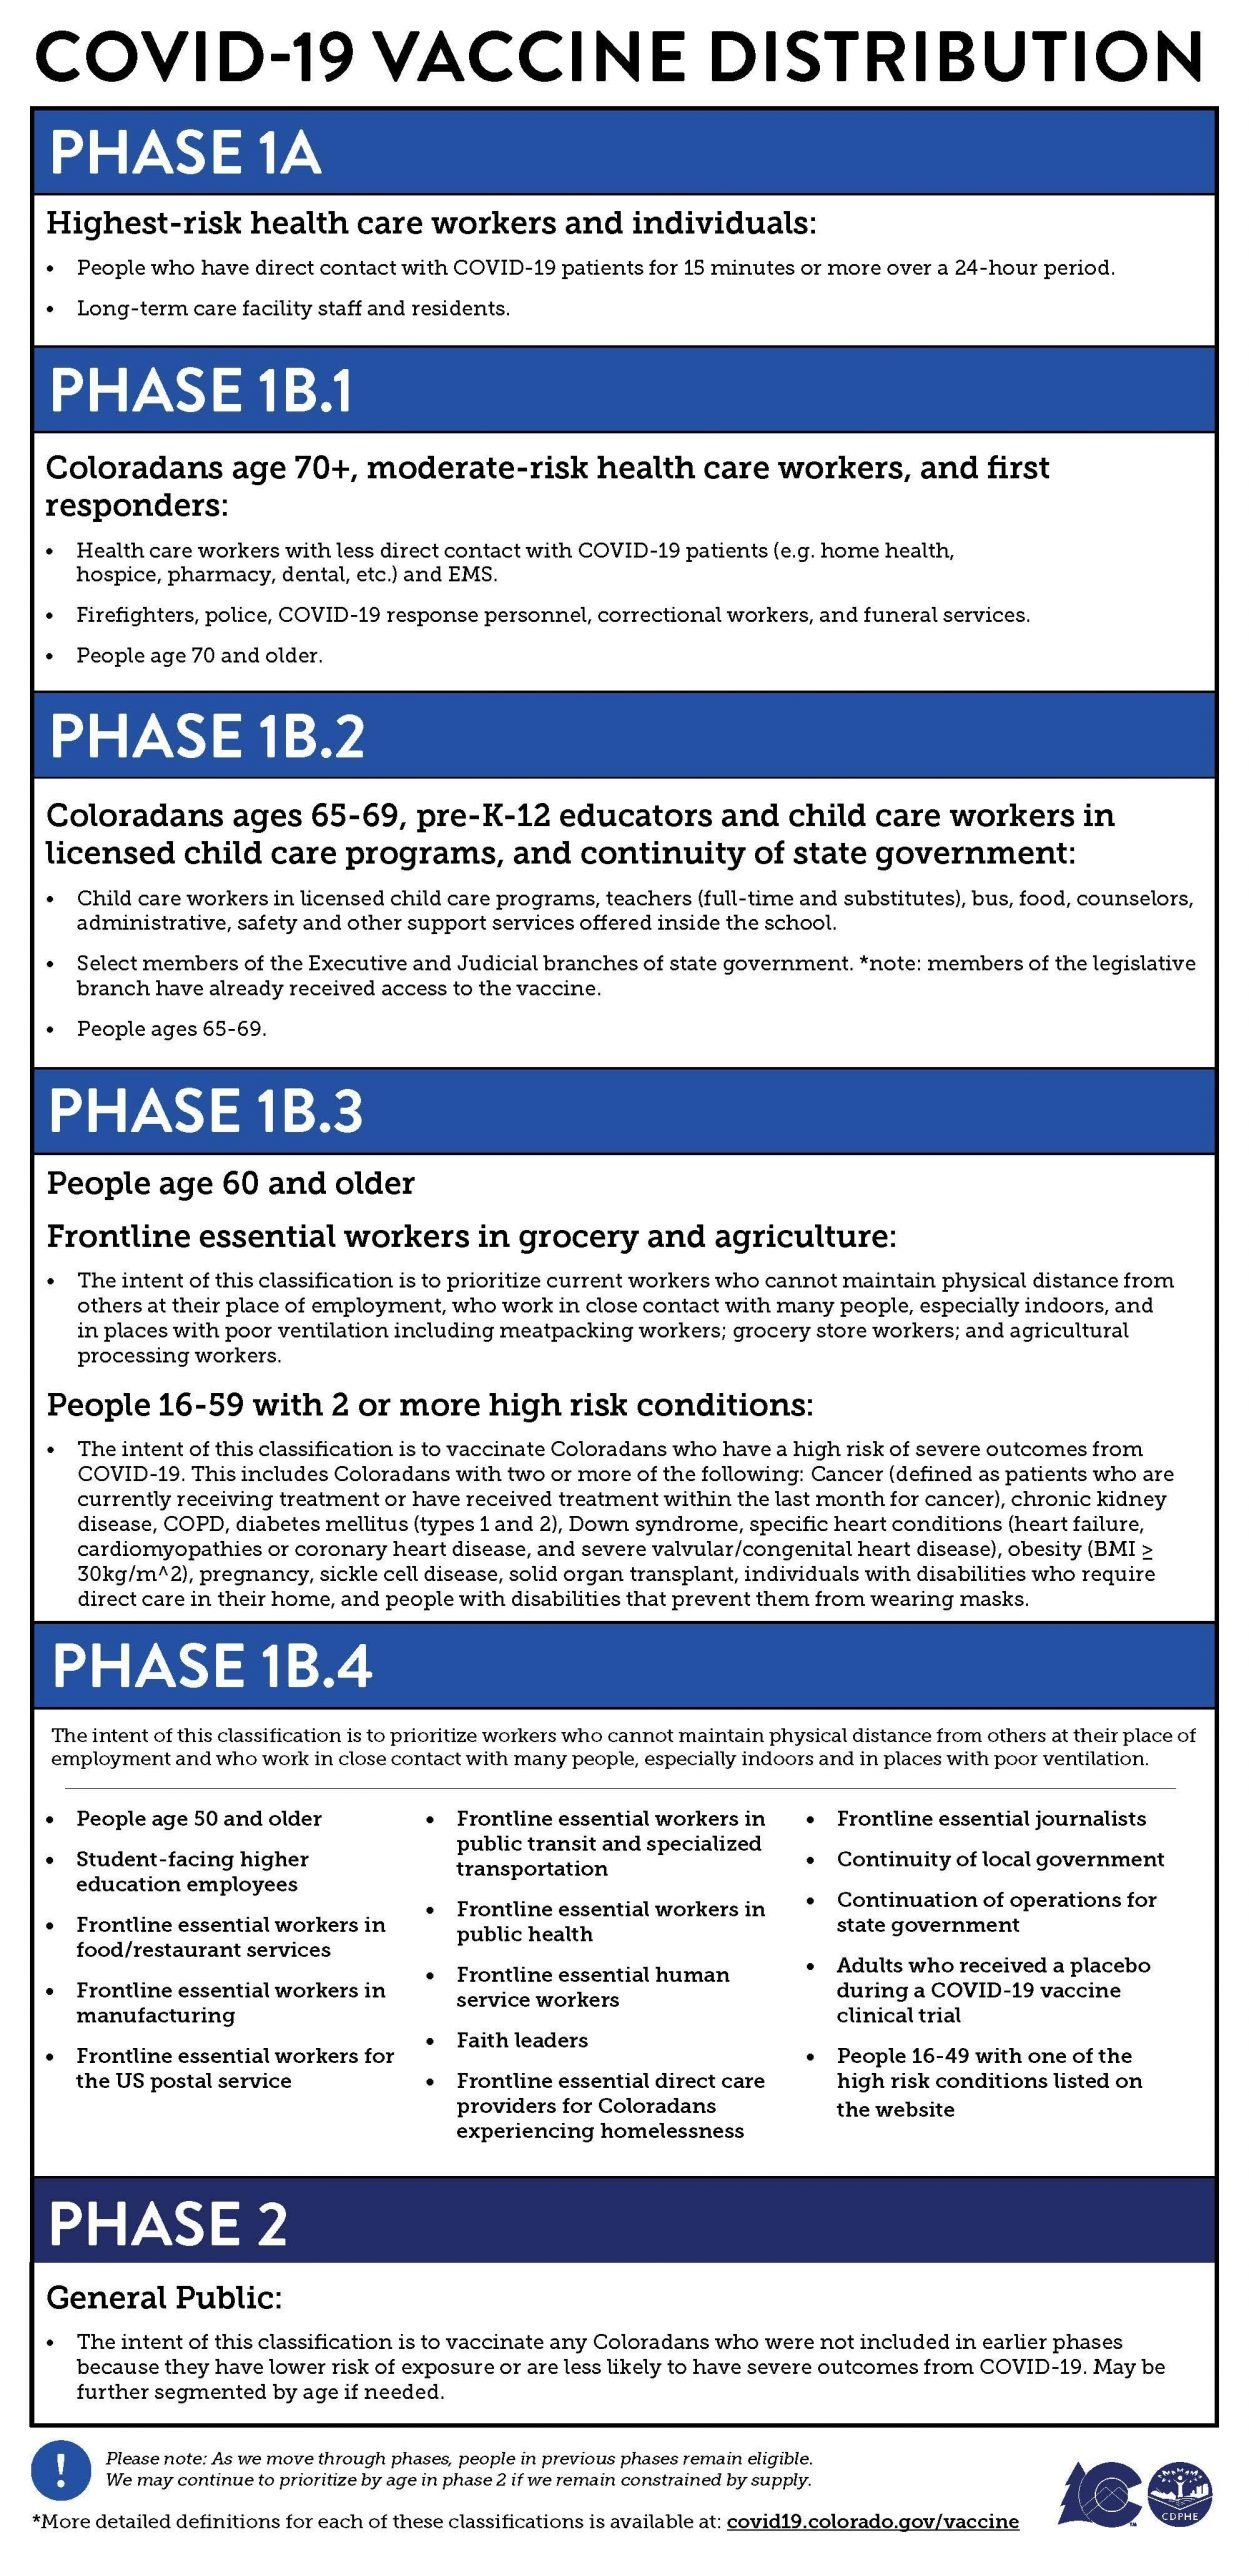 vaccine phases for providers 2.26.21 0 scaled